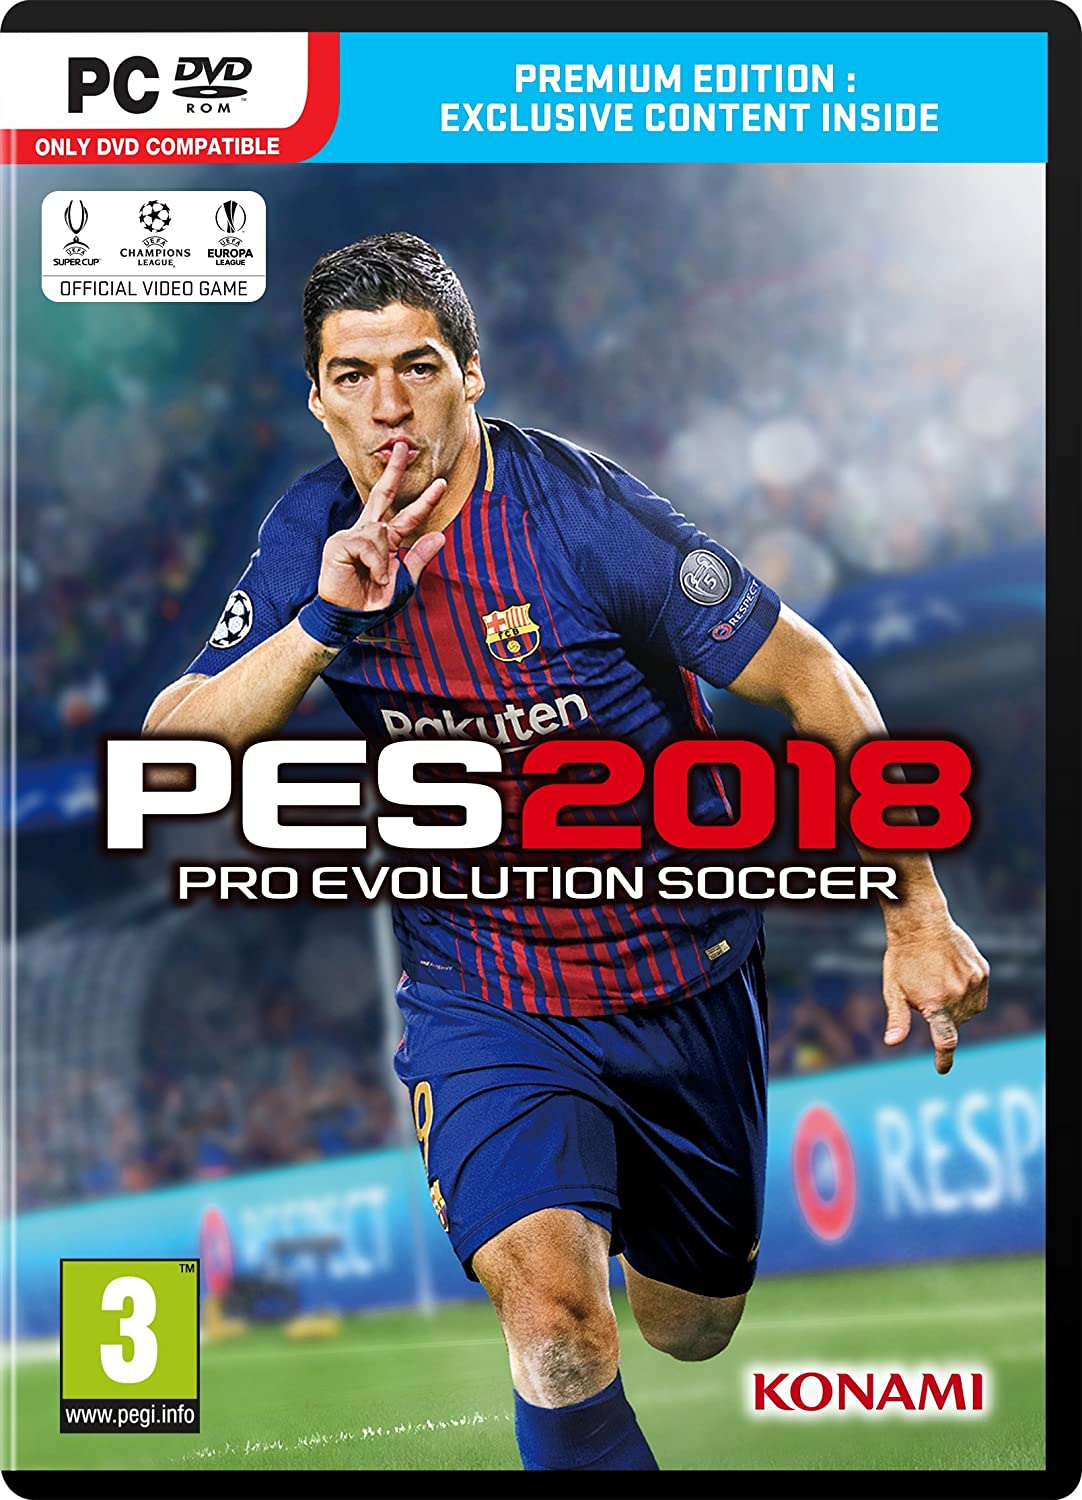 PES 2018 (PC DVD): Amazon co uk: PC & Video Games